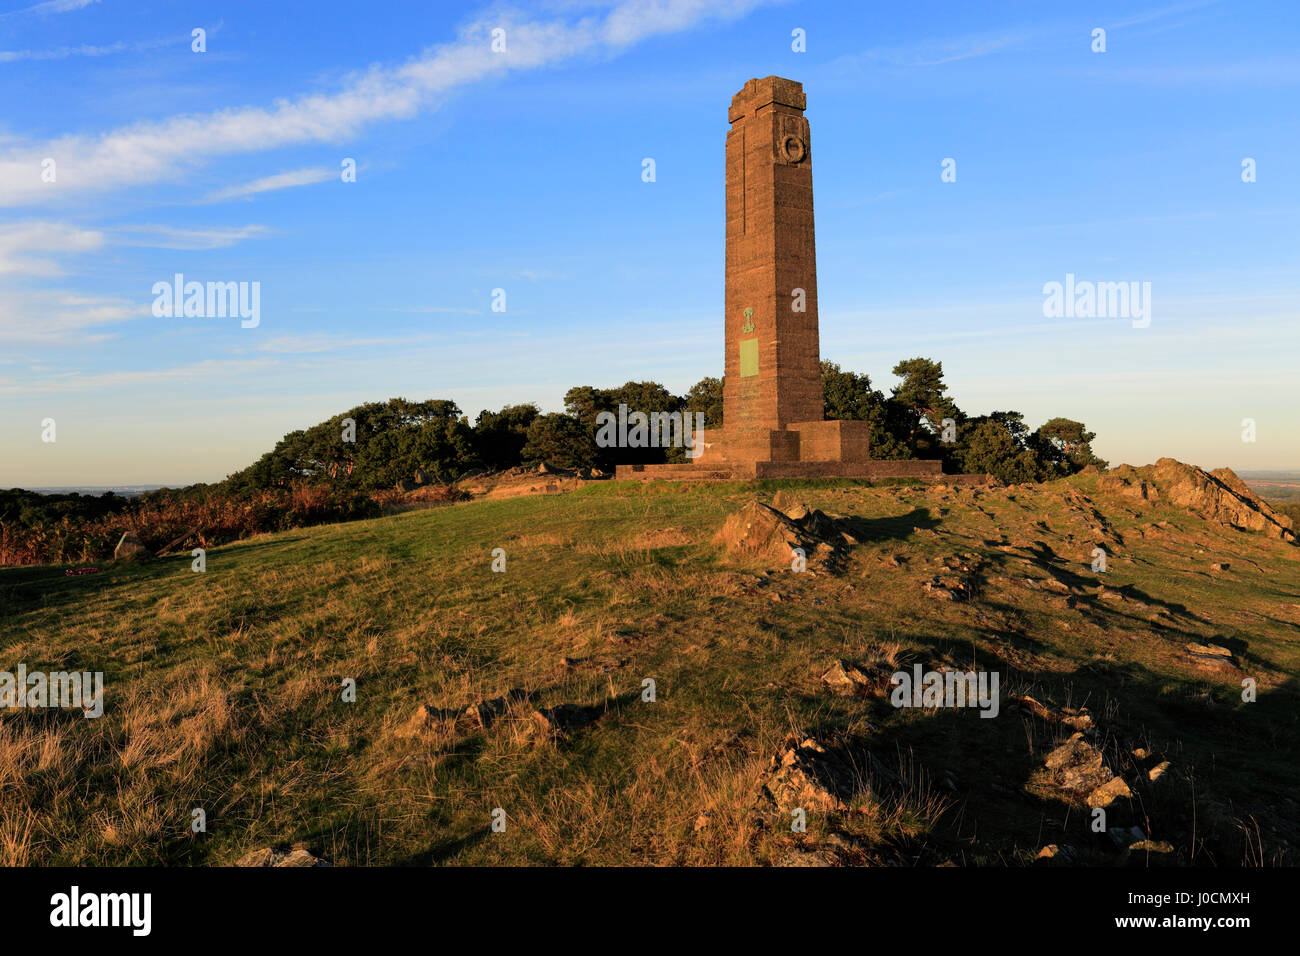 Sunset over the Leicestershire Yeomanry Regiment monument, Bradgate Park, Charnwood Forest, Leicestershire, England - Stock Image